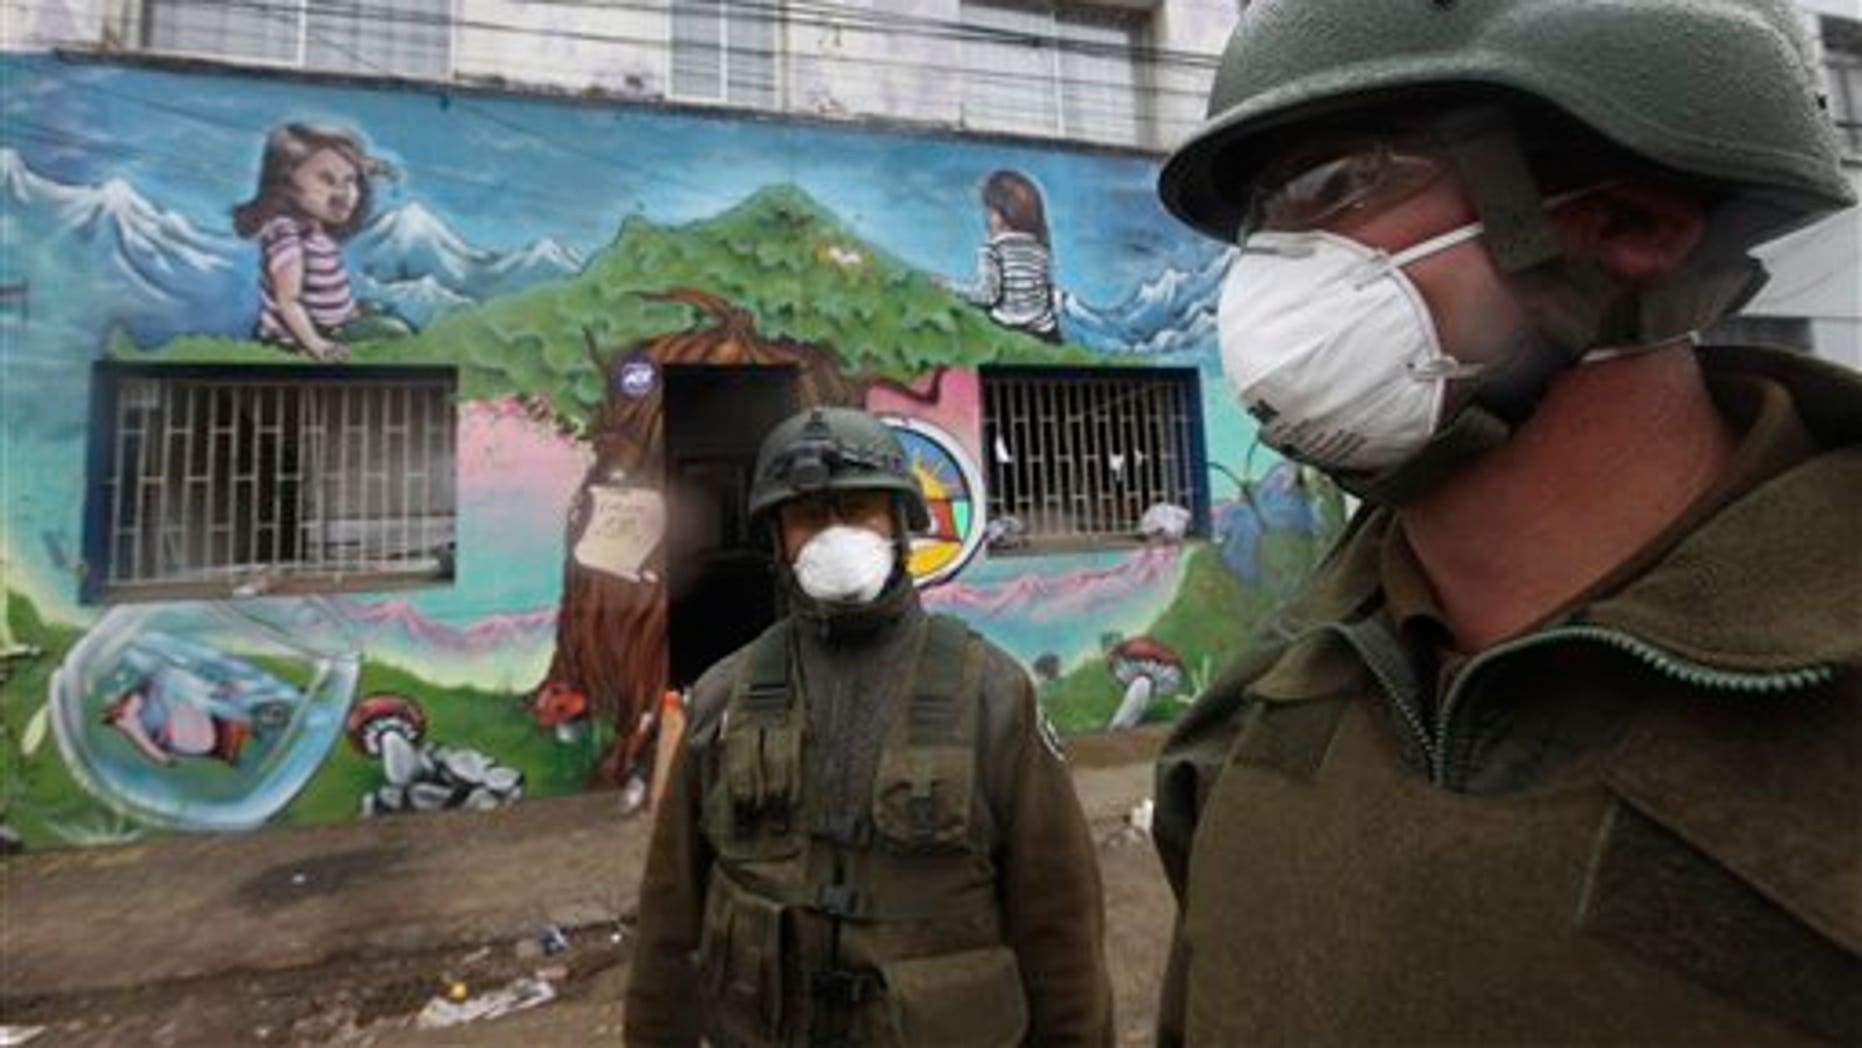 Soldiers wear masks as they patrol near a school in Talcahuano, Chile, Sunday, March 7, 2010.  An 8.8-magnitude earthquake struck central Chile on Feb. 27, causing widespread damage. (AP Photo/Silvia Izquierdo)